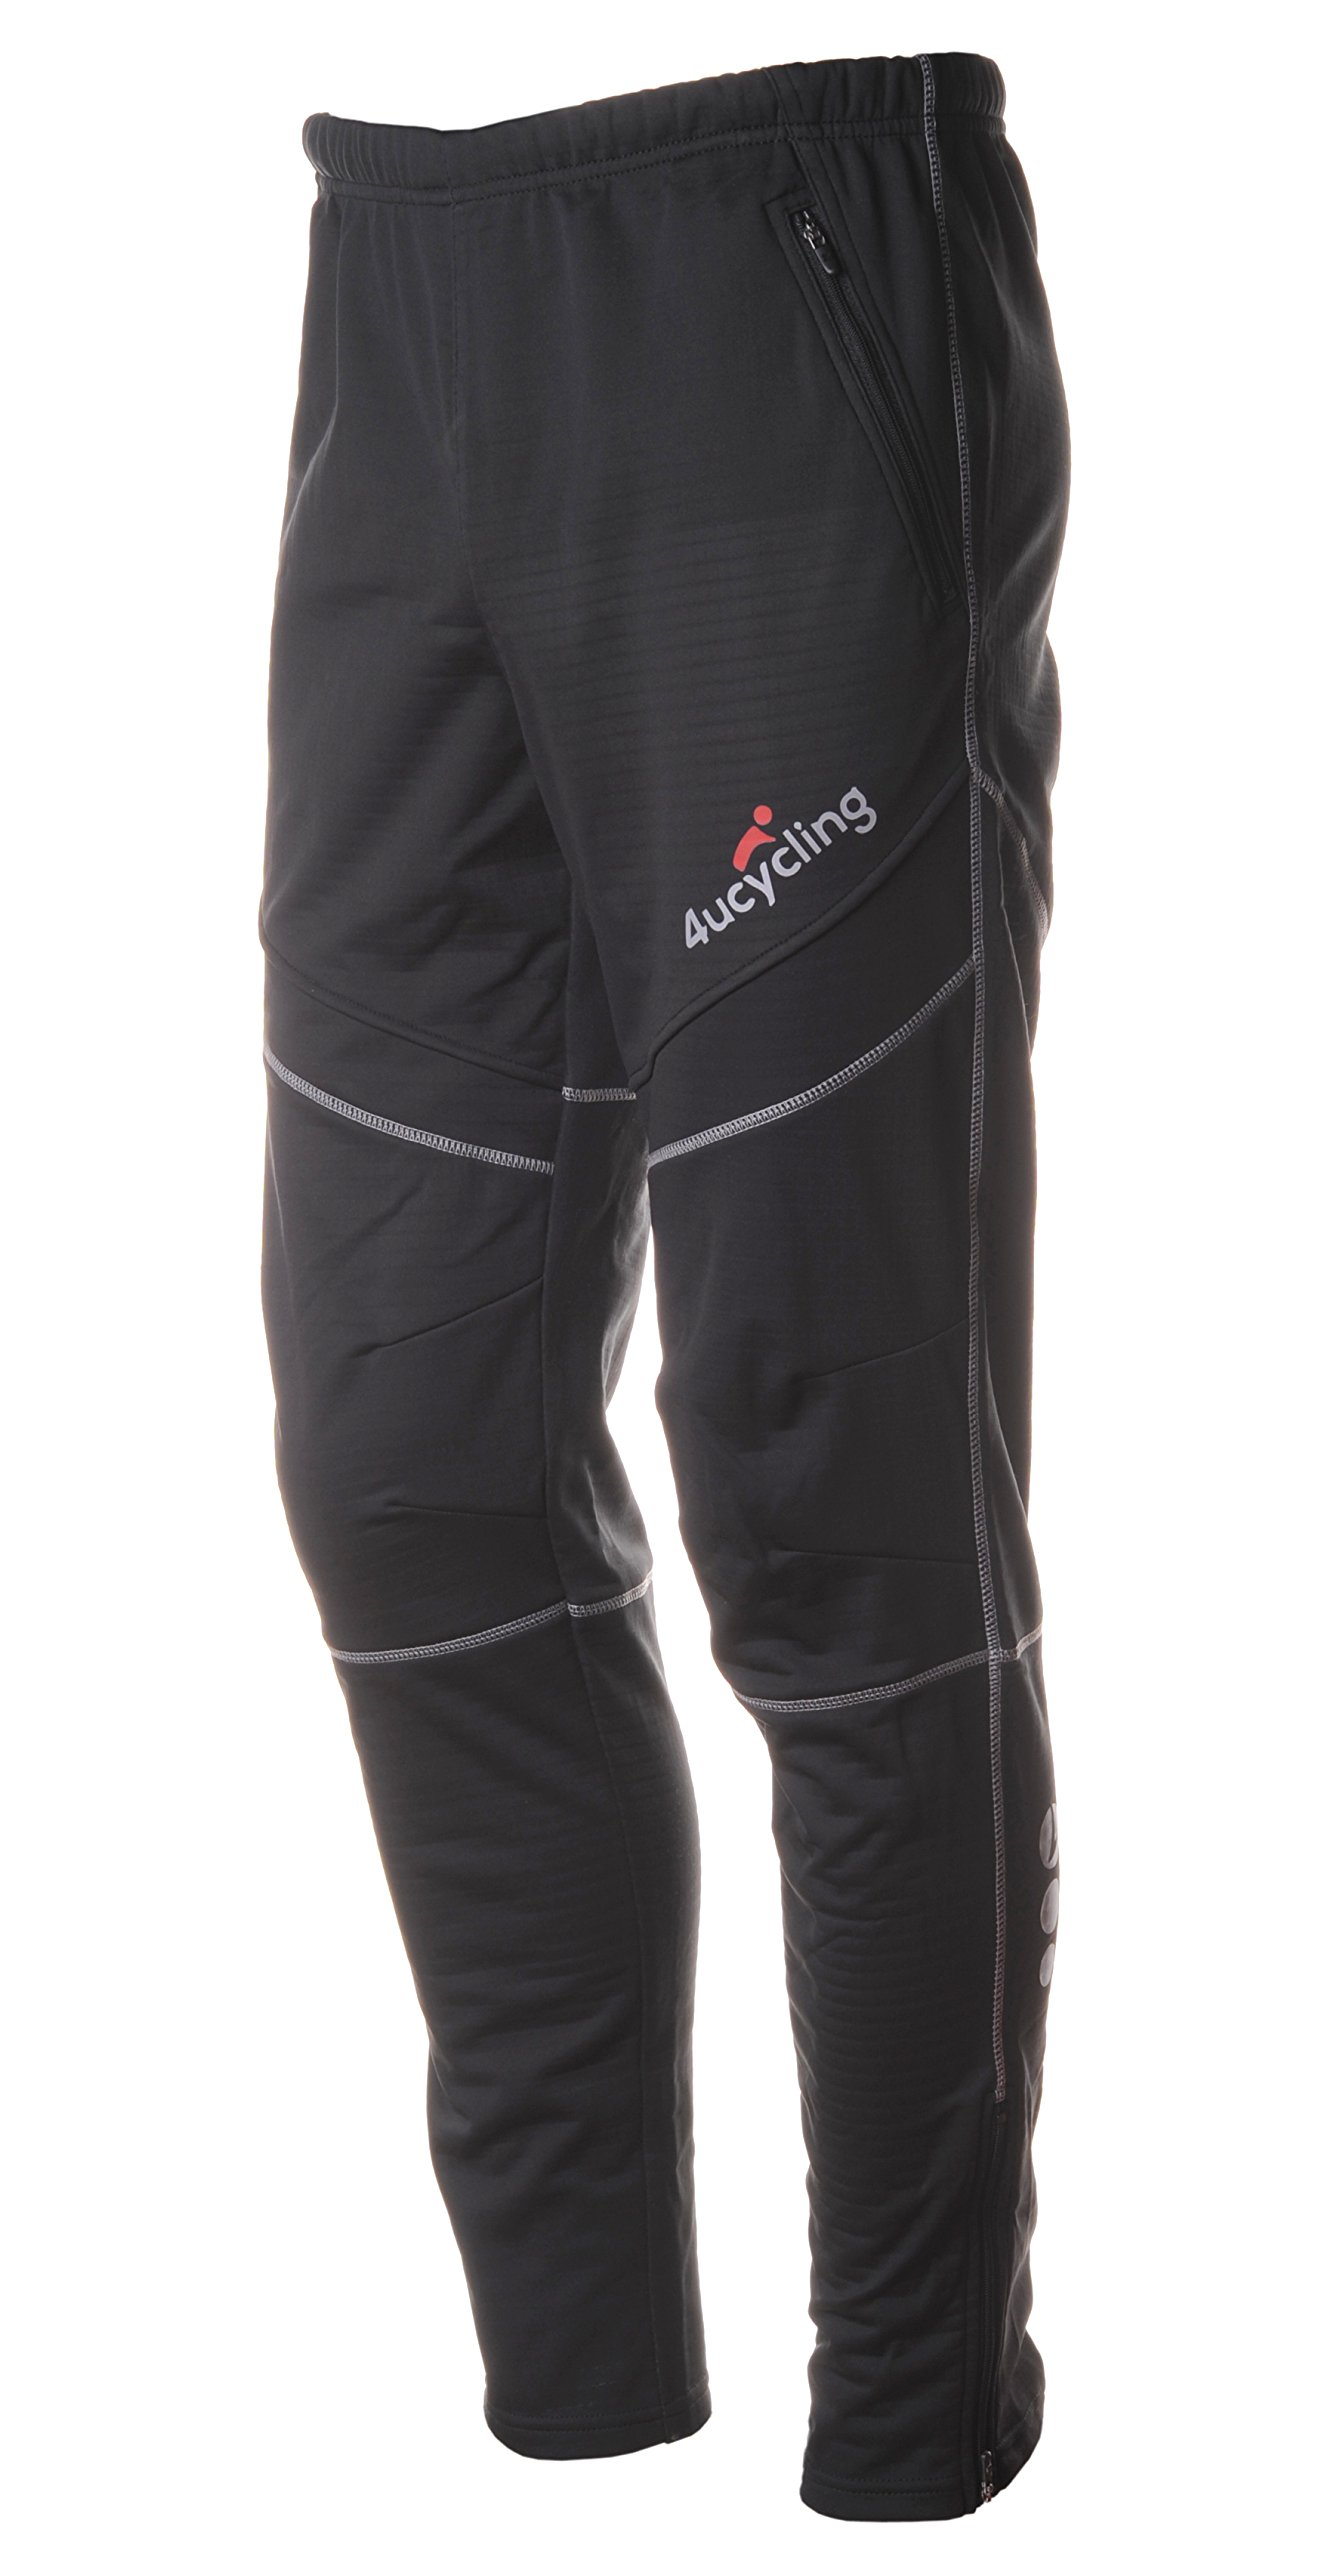 4ucycling Men's Bike Pants Fleeced for Cold Weather, Black, S by 4ucycling